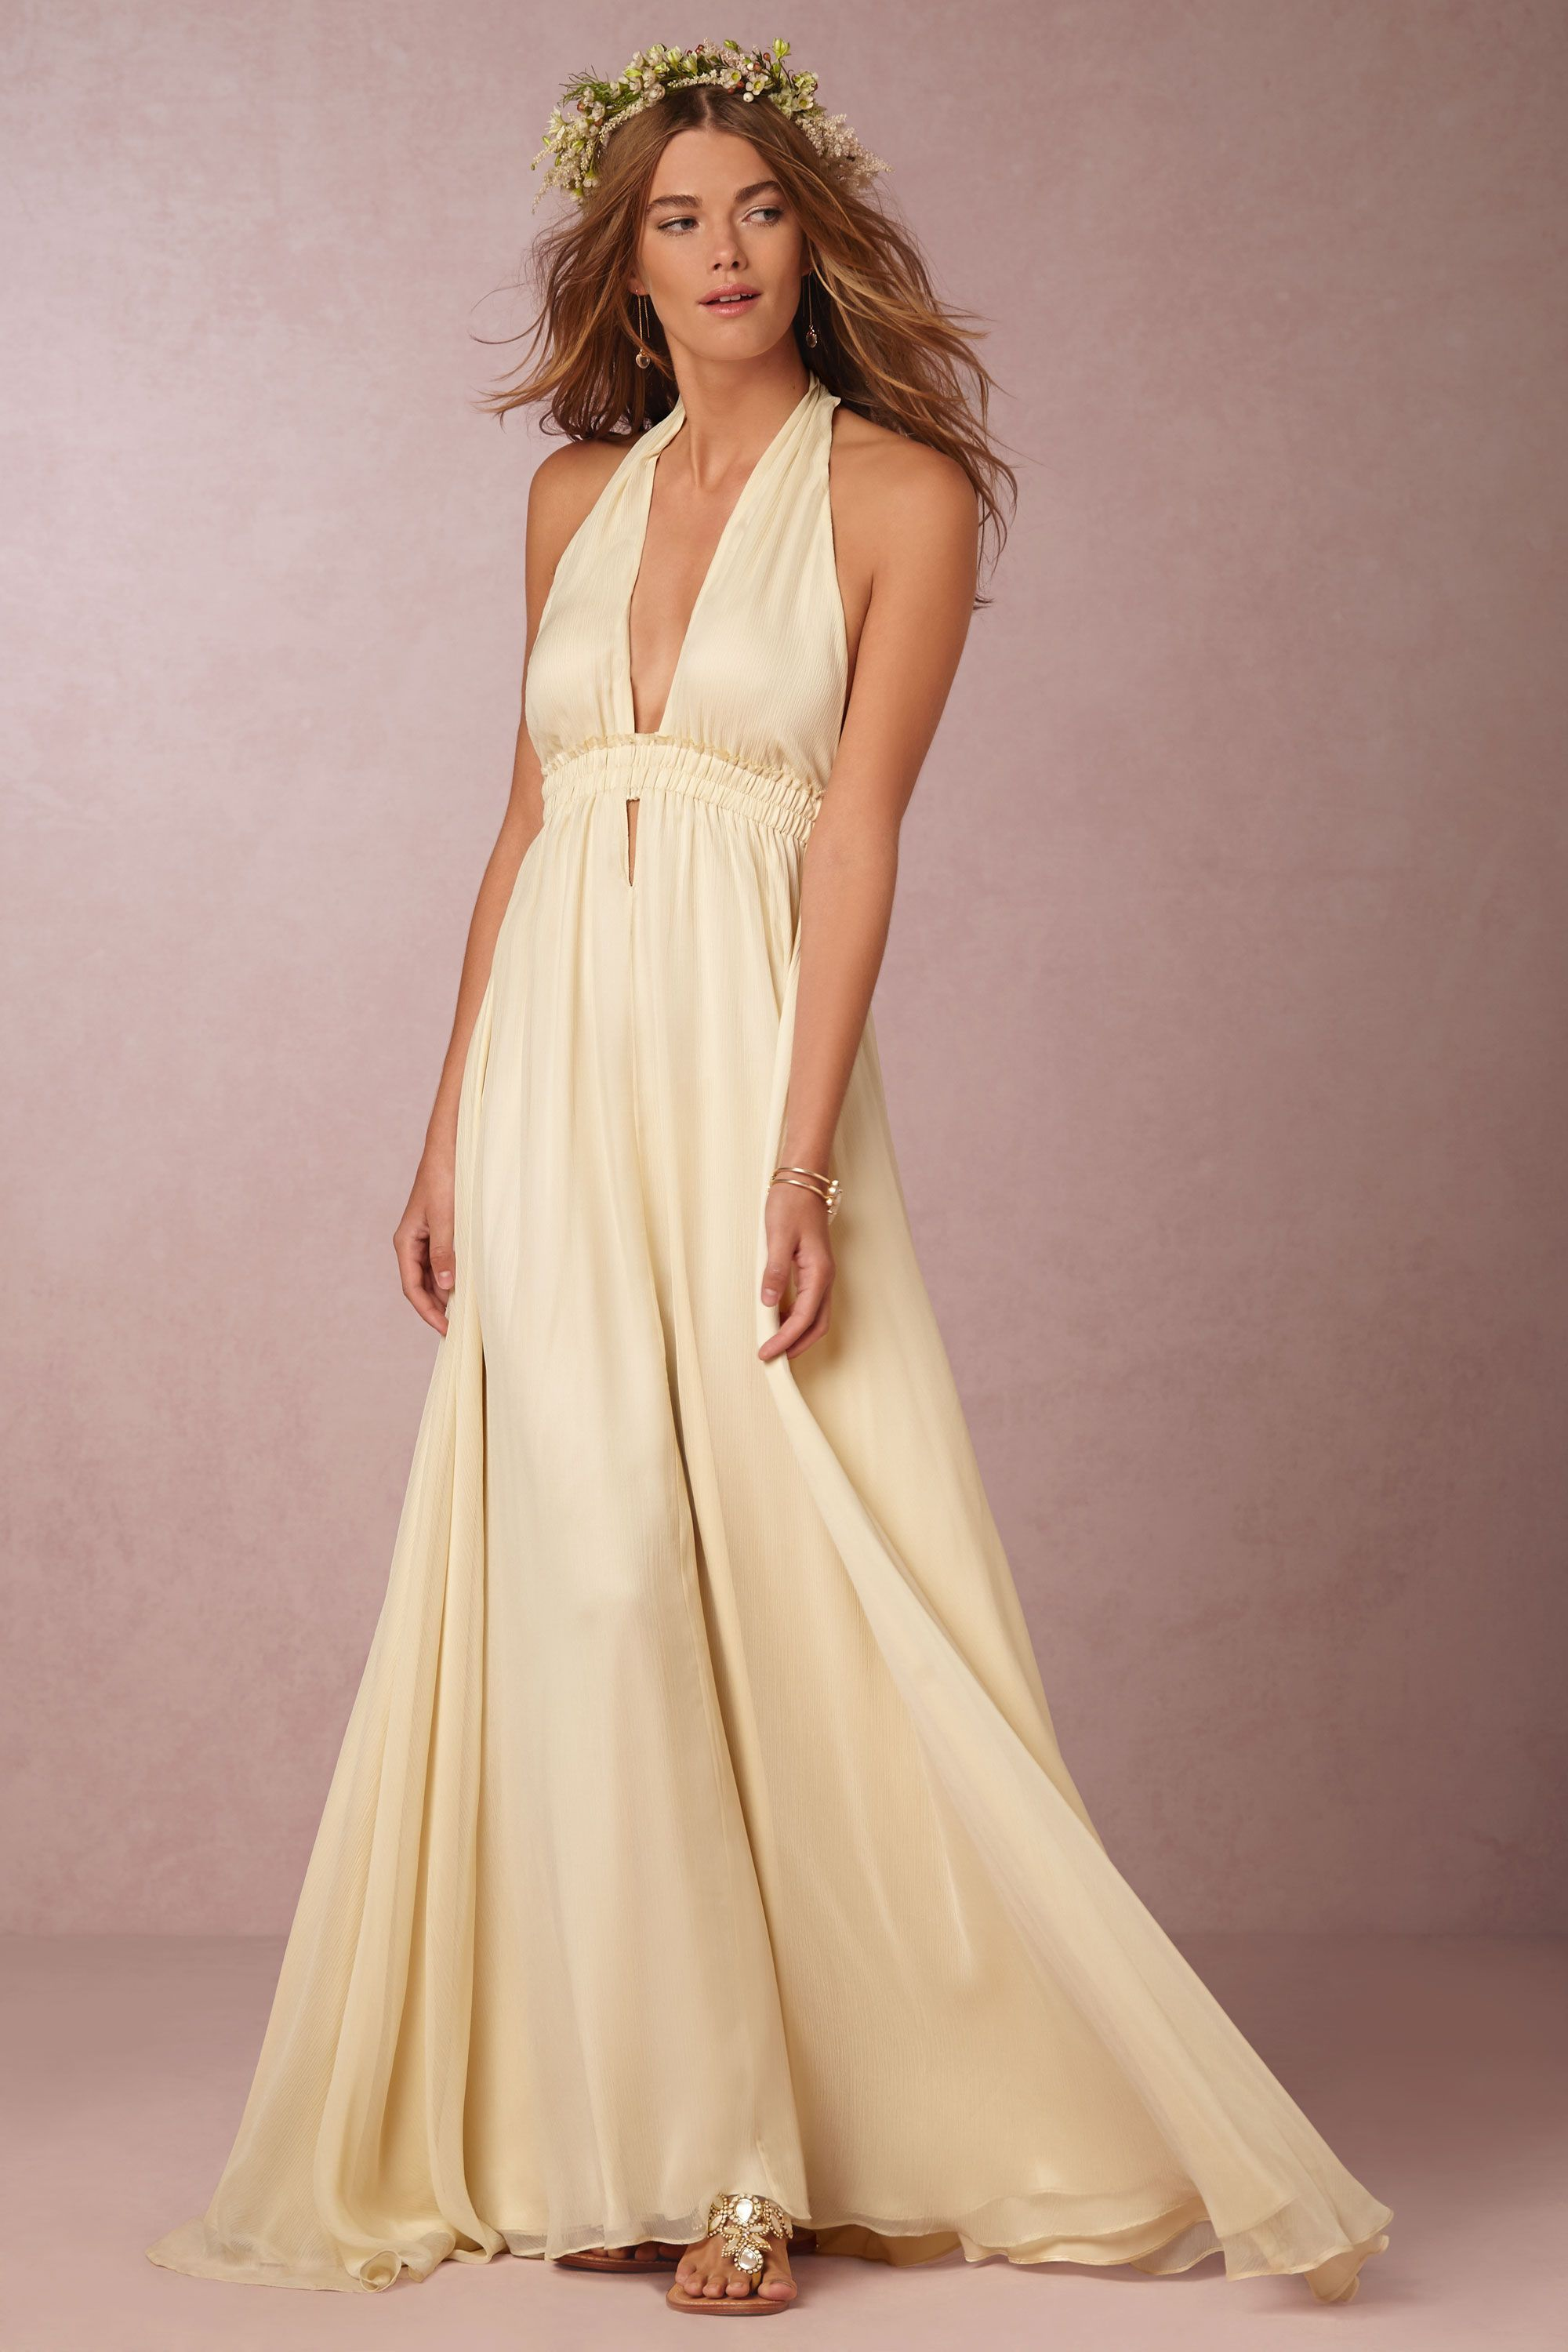 Wedding dresses for broad shoulders  Waverly Gown from BHLDN  Rella  Pinterest  Gowns and Event ideas